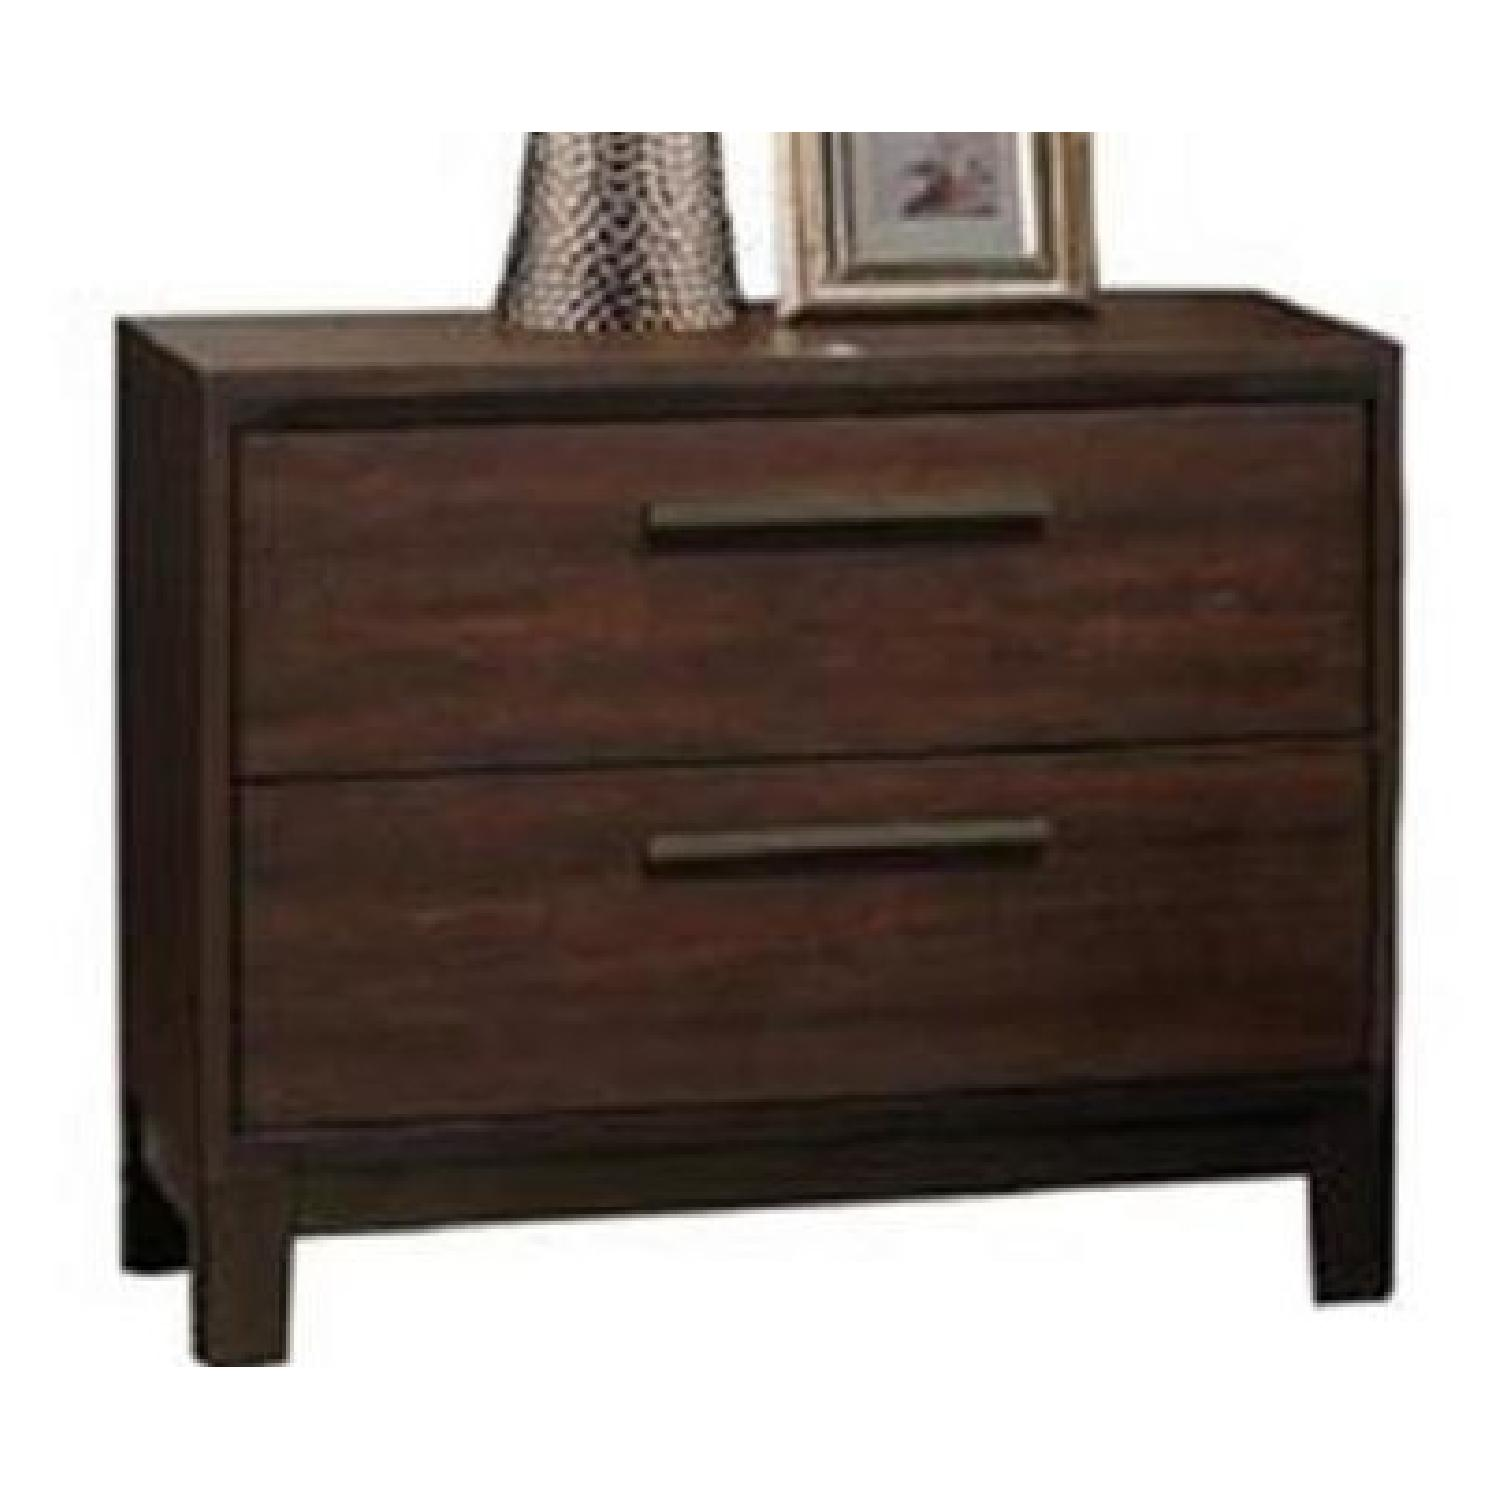 Modern 2-Drawer Nightstand in Rustic Tobacco Finish - image-0